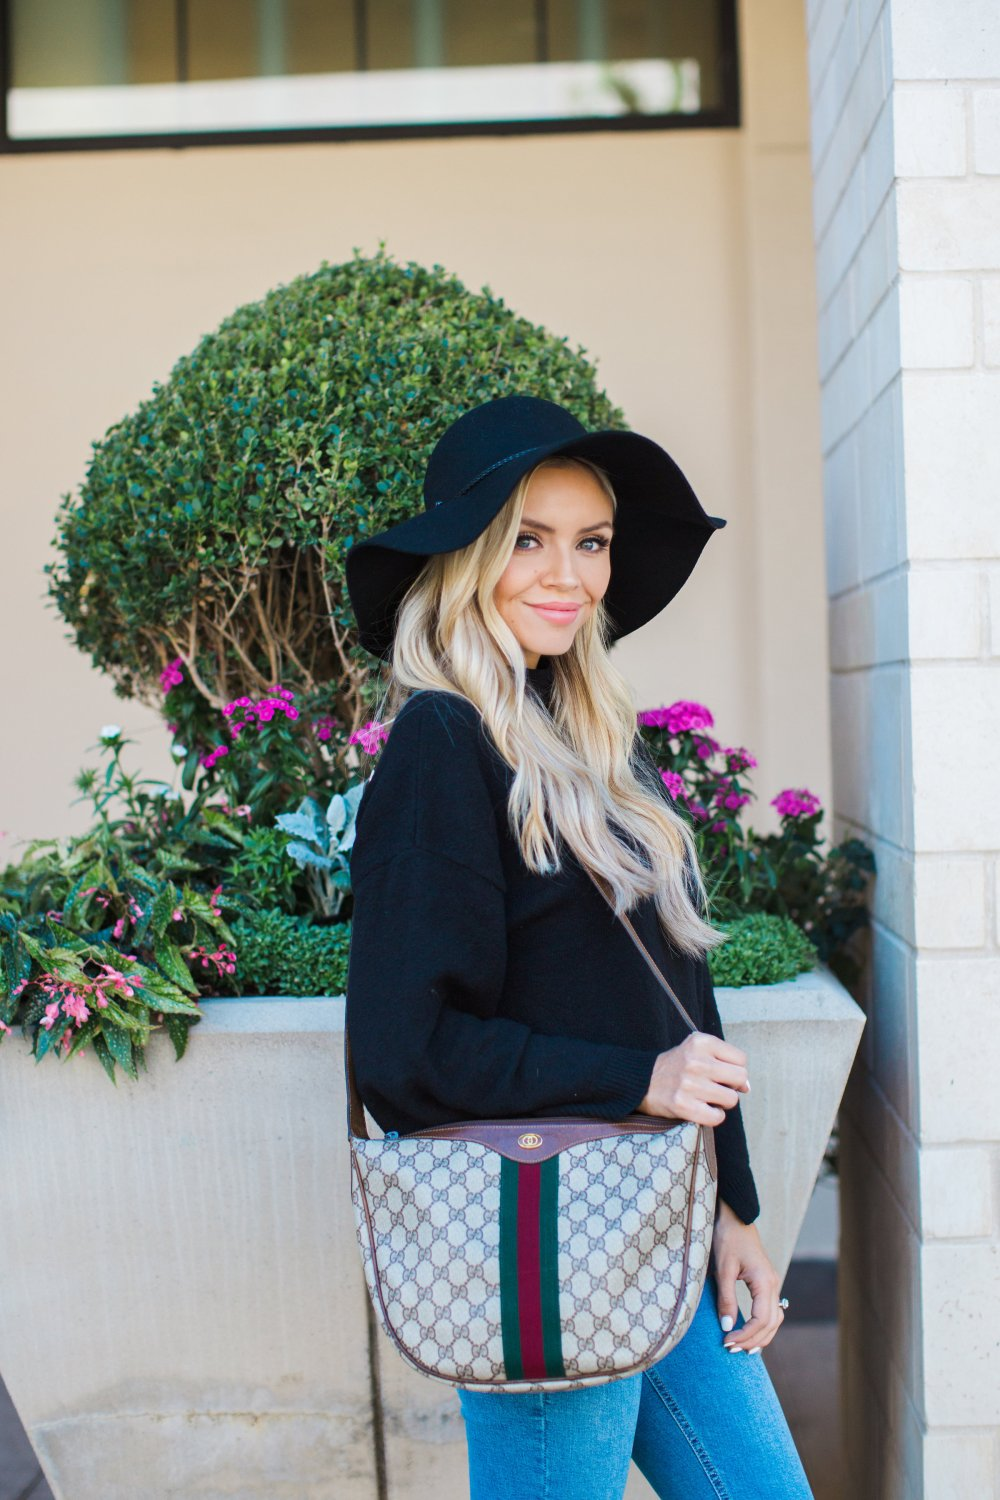 Are you in the market for a new designer bag? The Lady Bag is an amazing online site that sells 100% authentic, luxurious pre-owned designer bags! Perfect for yourself or as a gift with the holidays coming up! I am in love with my new vintage Gucci! Check them out!